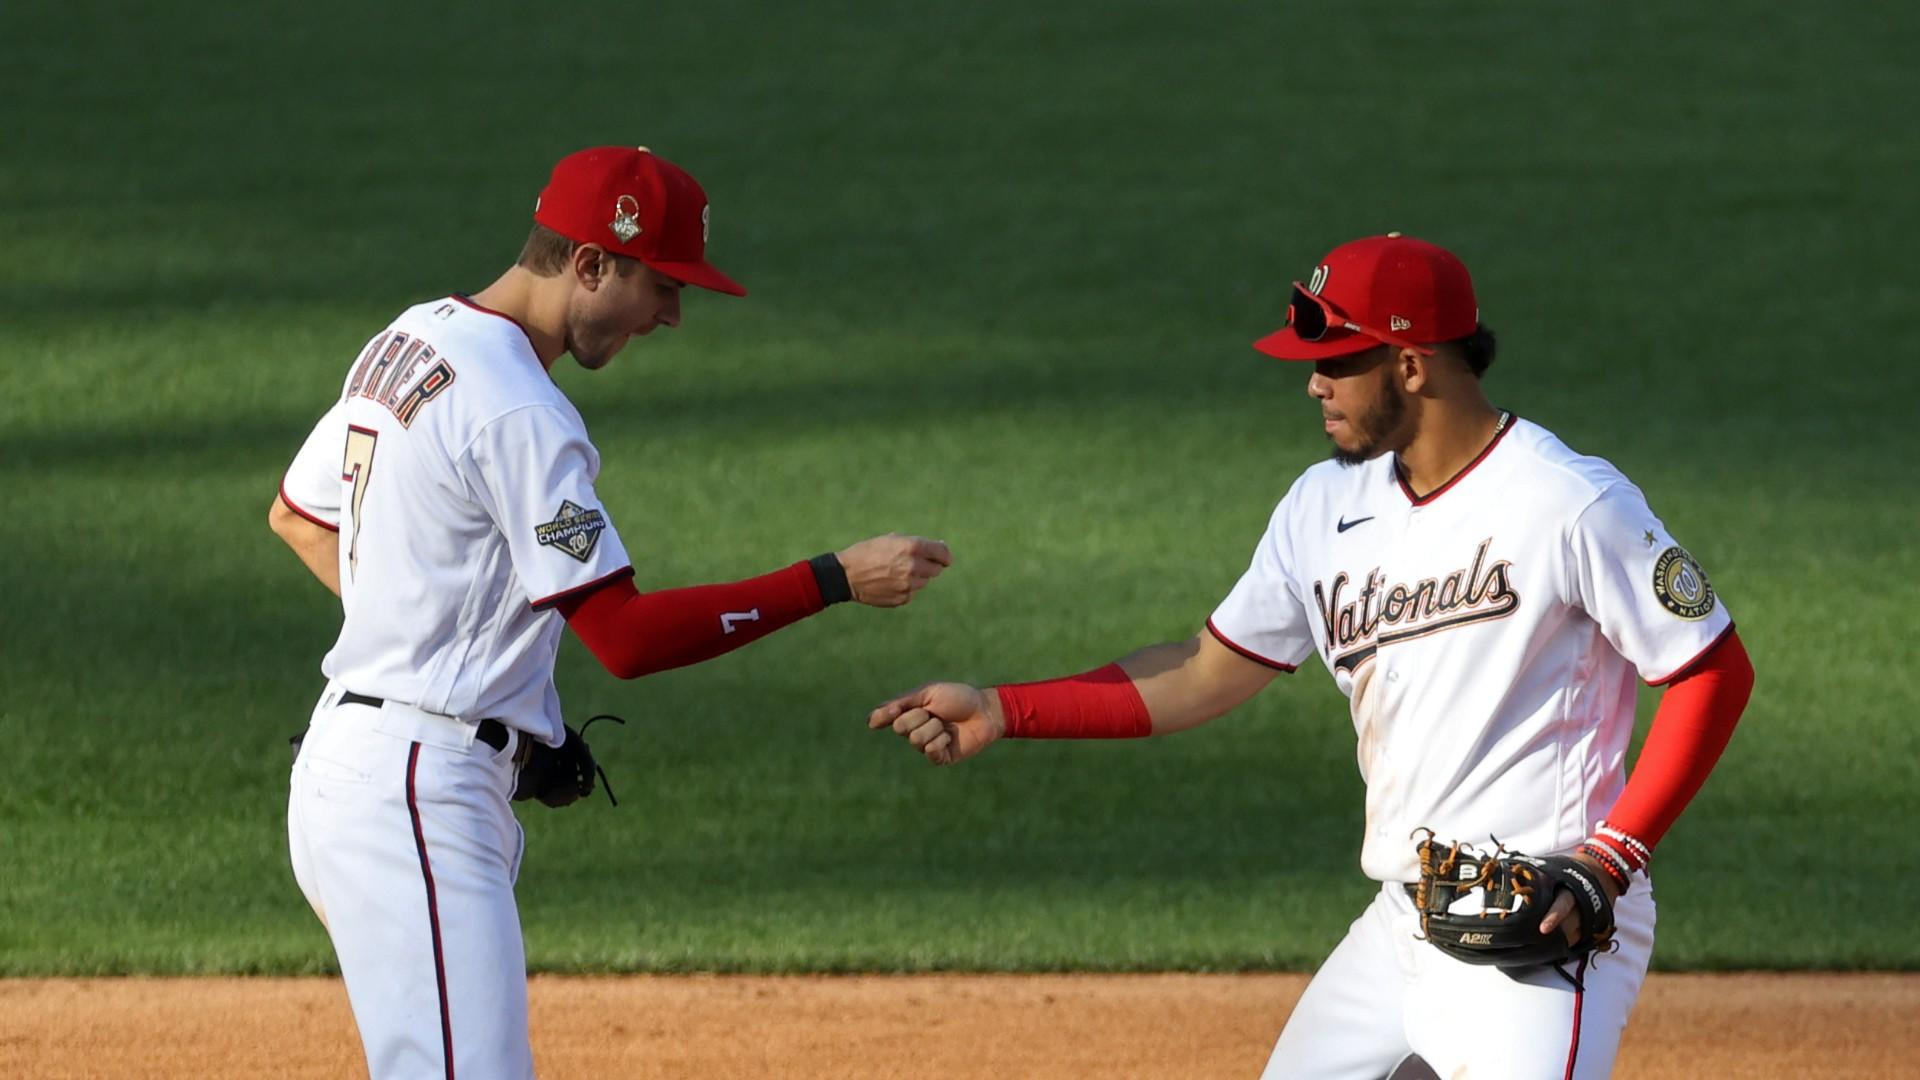 Déjà vu: Nationals again sweep Phillies doubleheader to dash playoff hopes